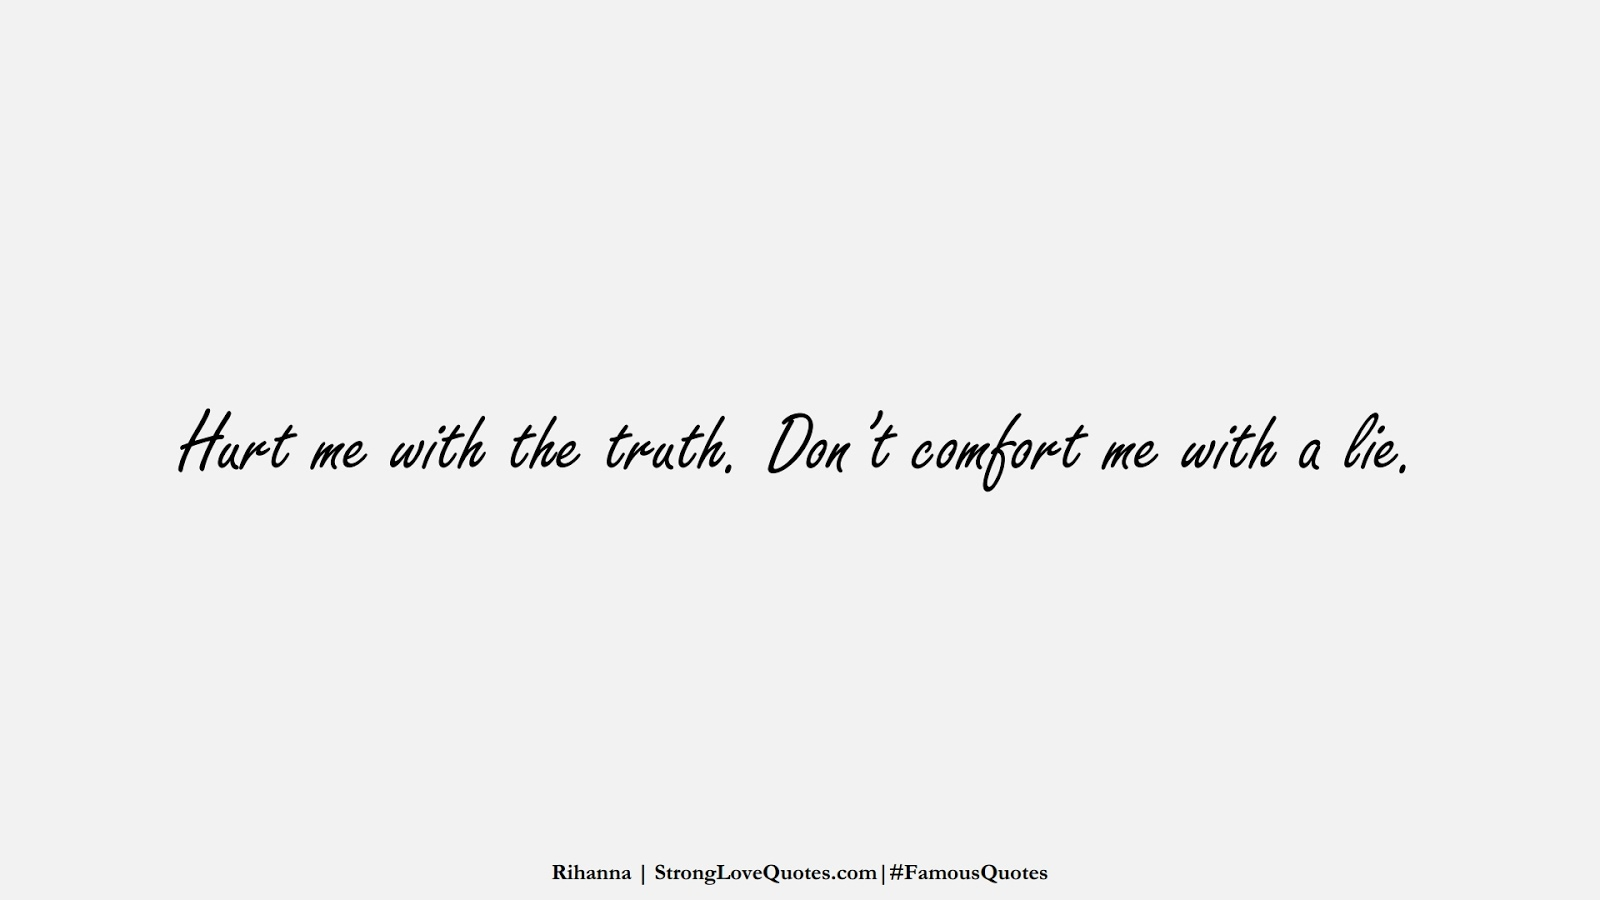 Hurt me with the truth. Don't comfort me with a lie. (Rihanna);  #FamousQuotes